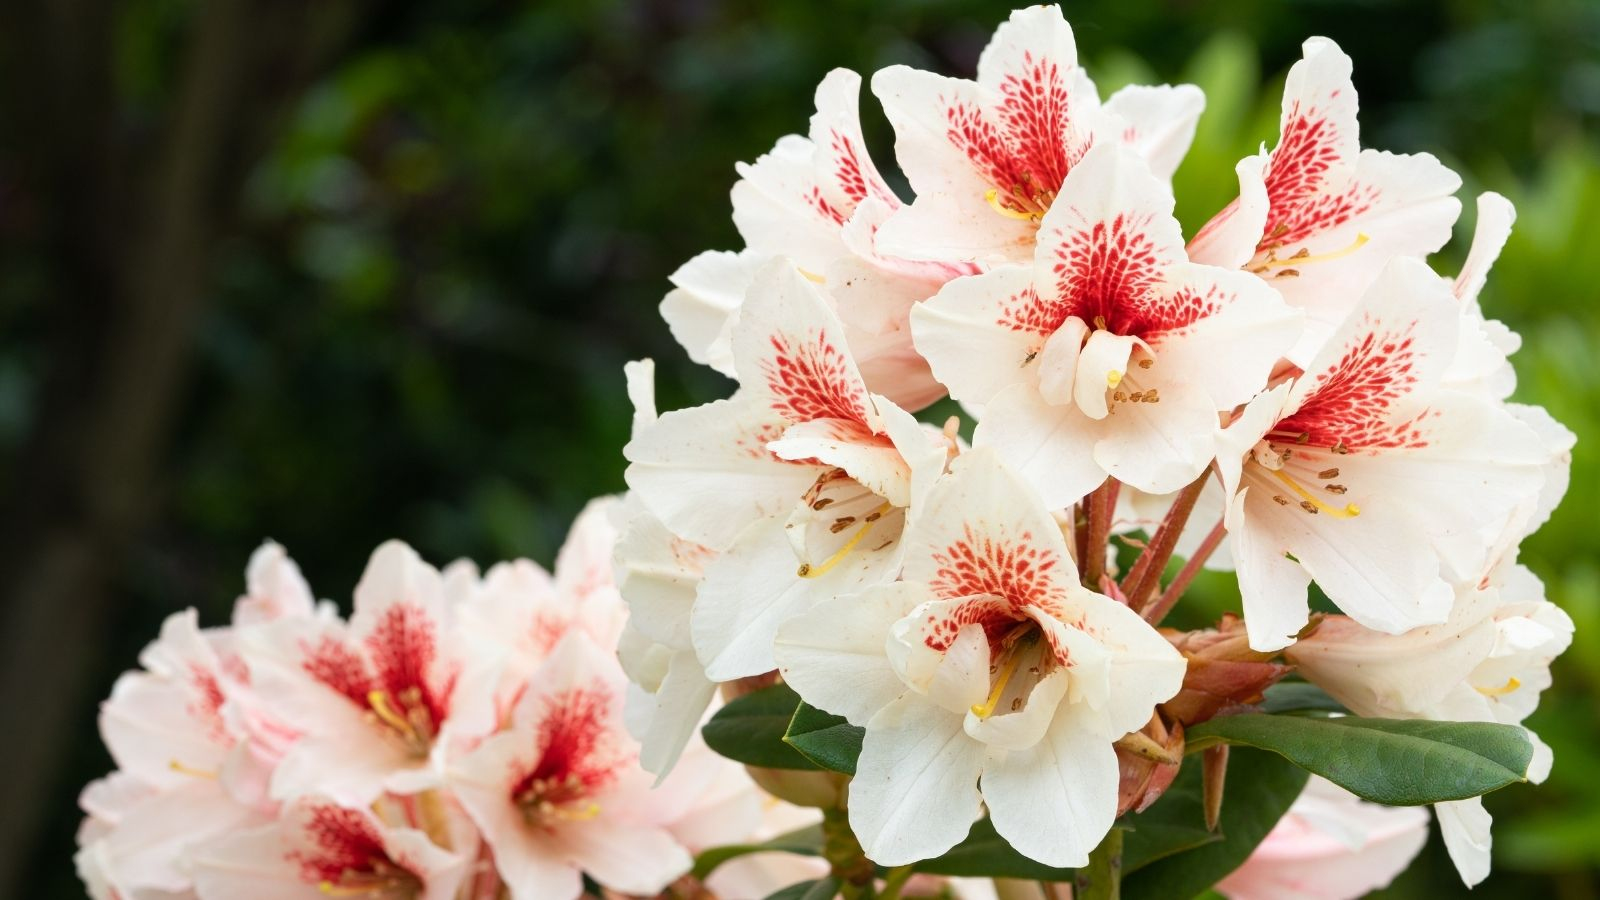 White rhododendrons with pink speckles